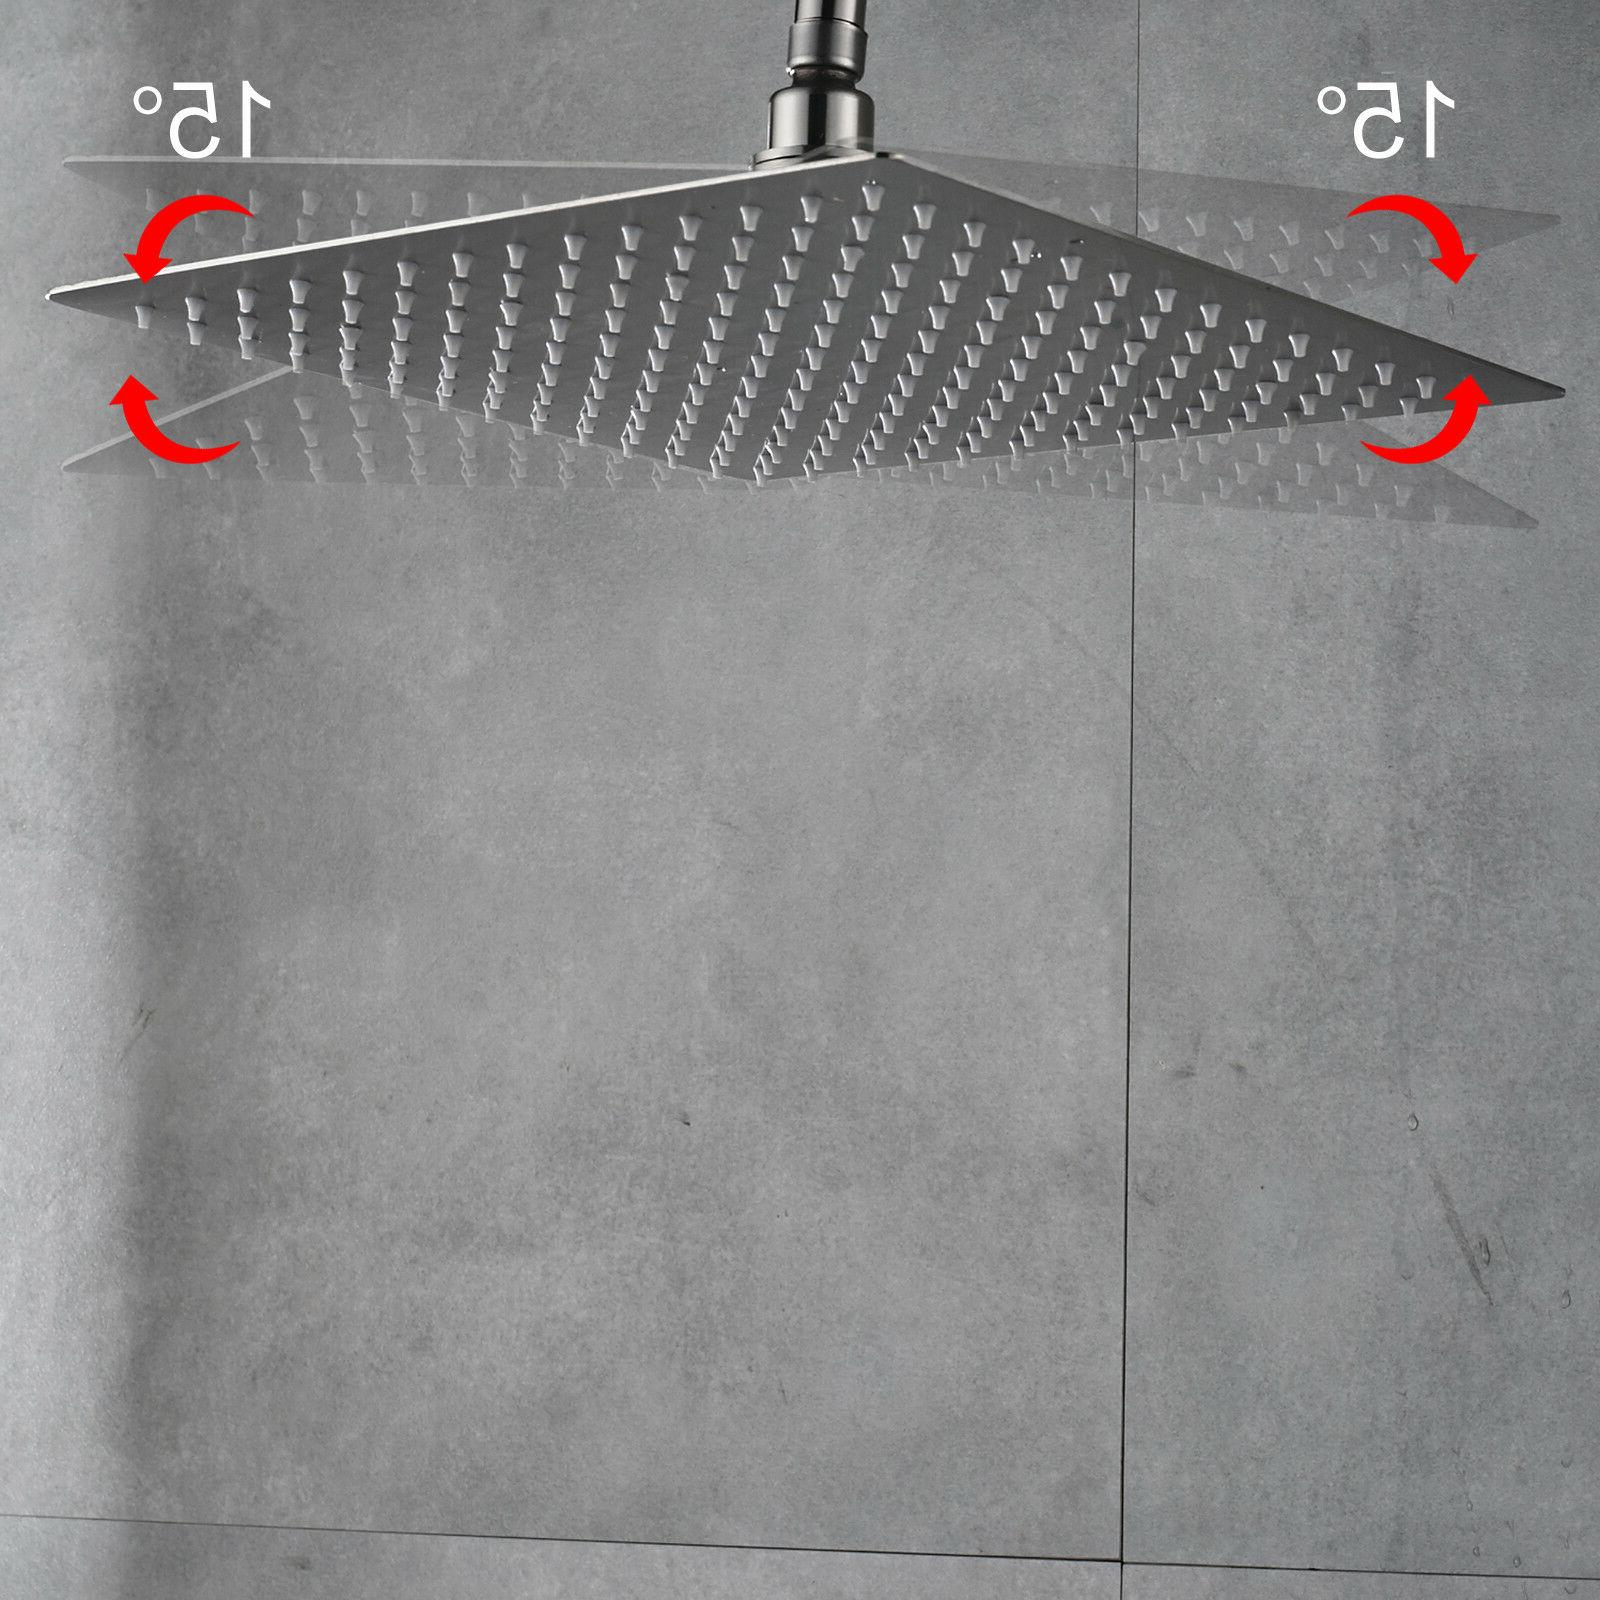 16-Inch Square Shower Head Nickel Top Rotate